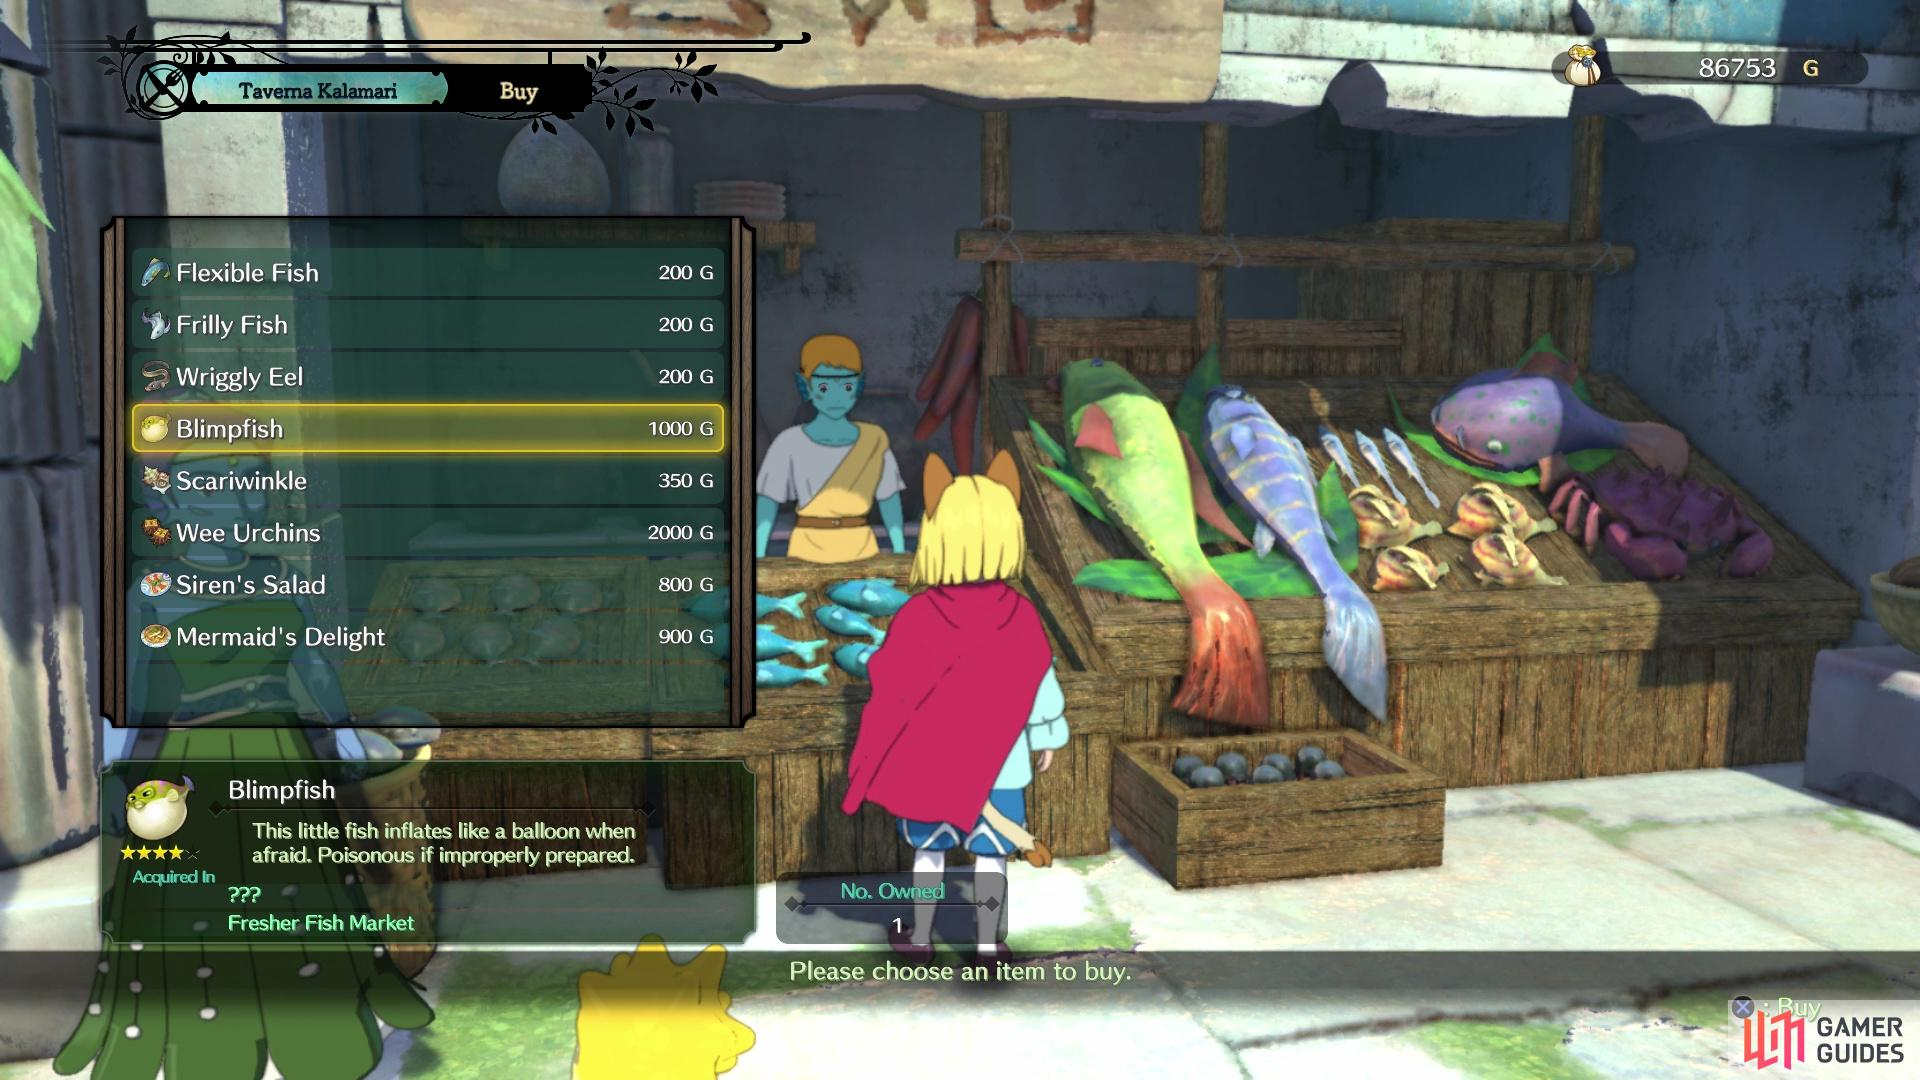 You can purchase a Blimpfish from the one merchant in Hydropolis